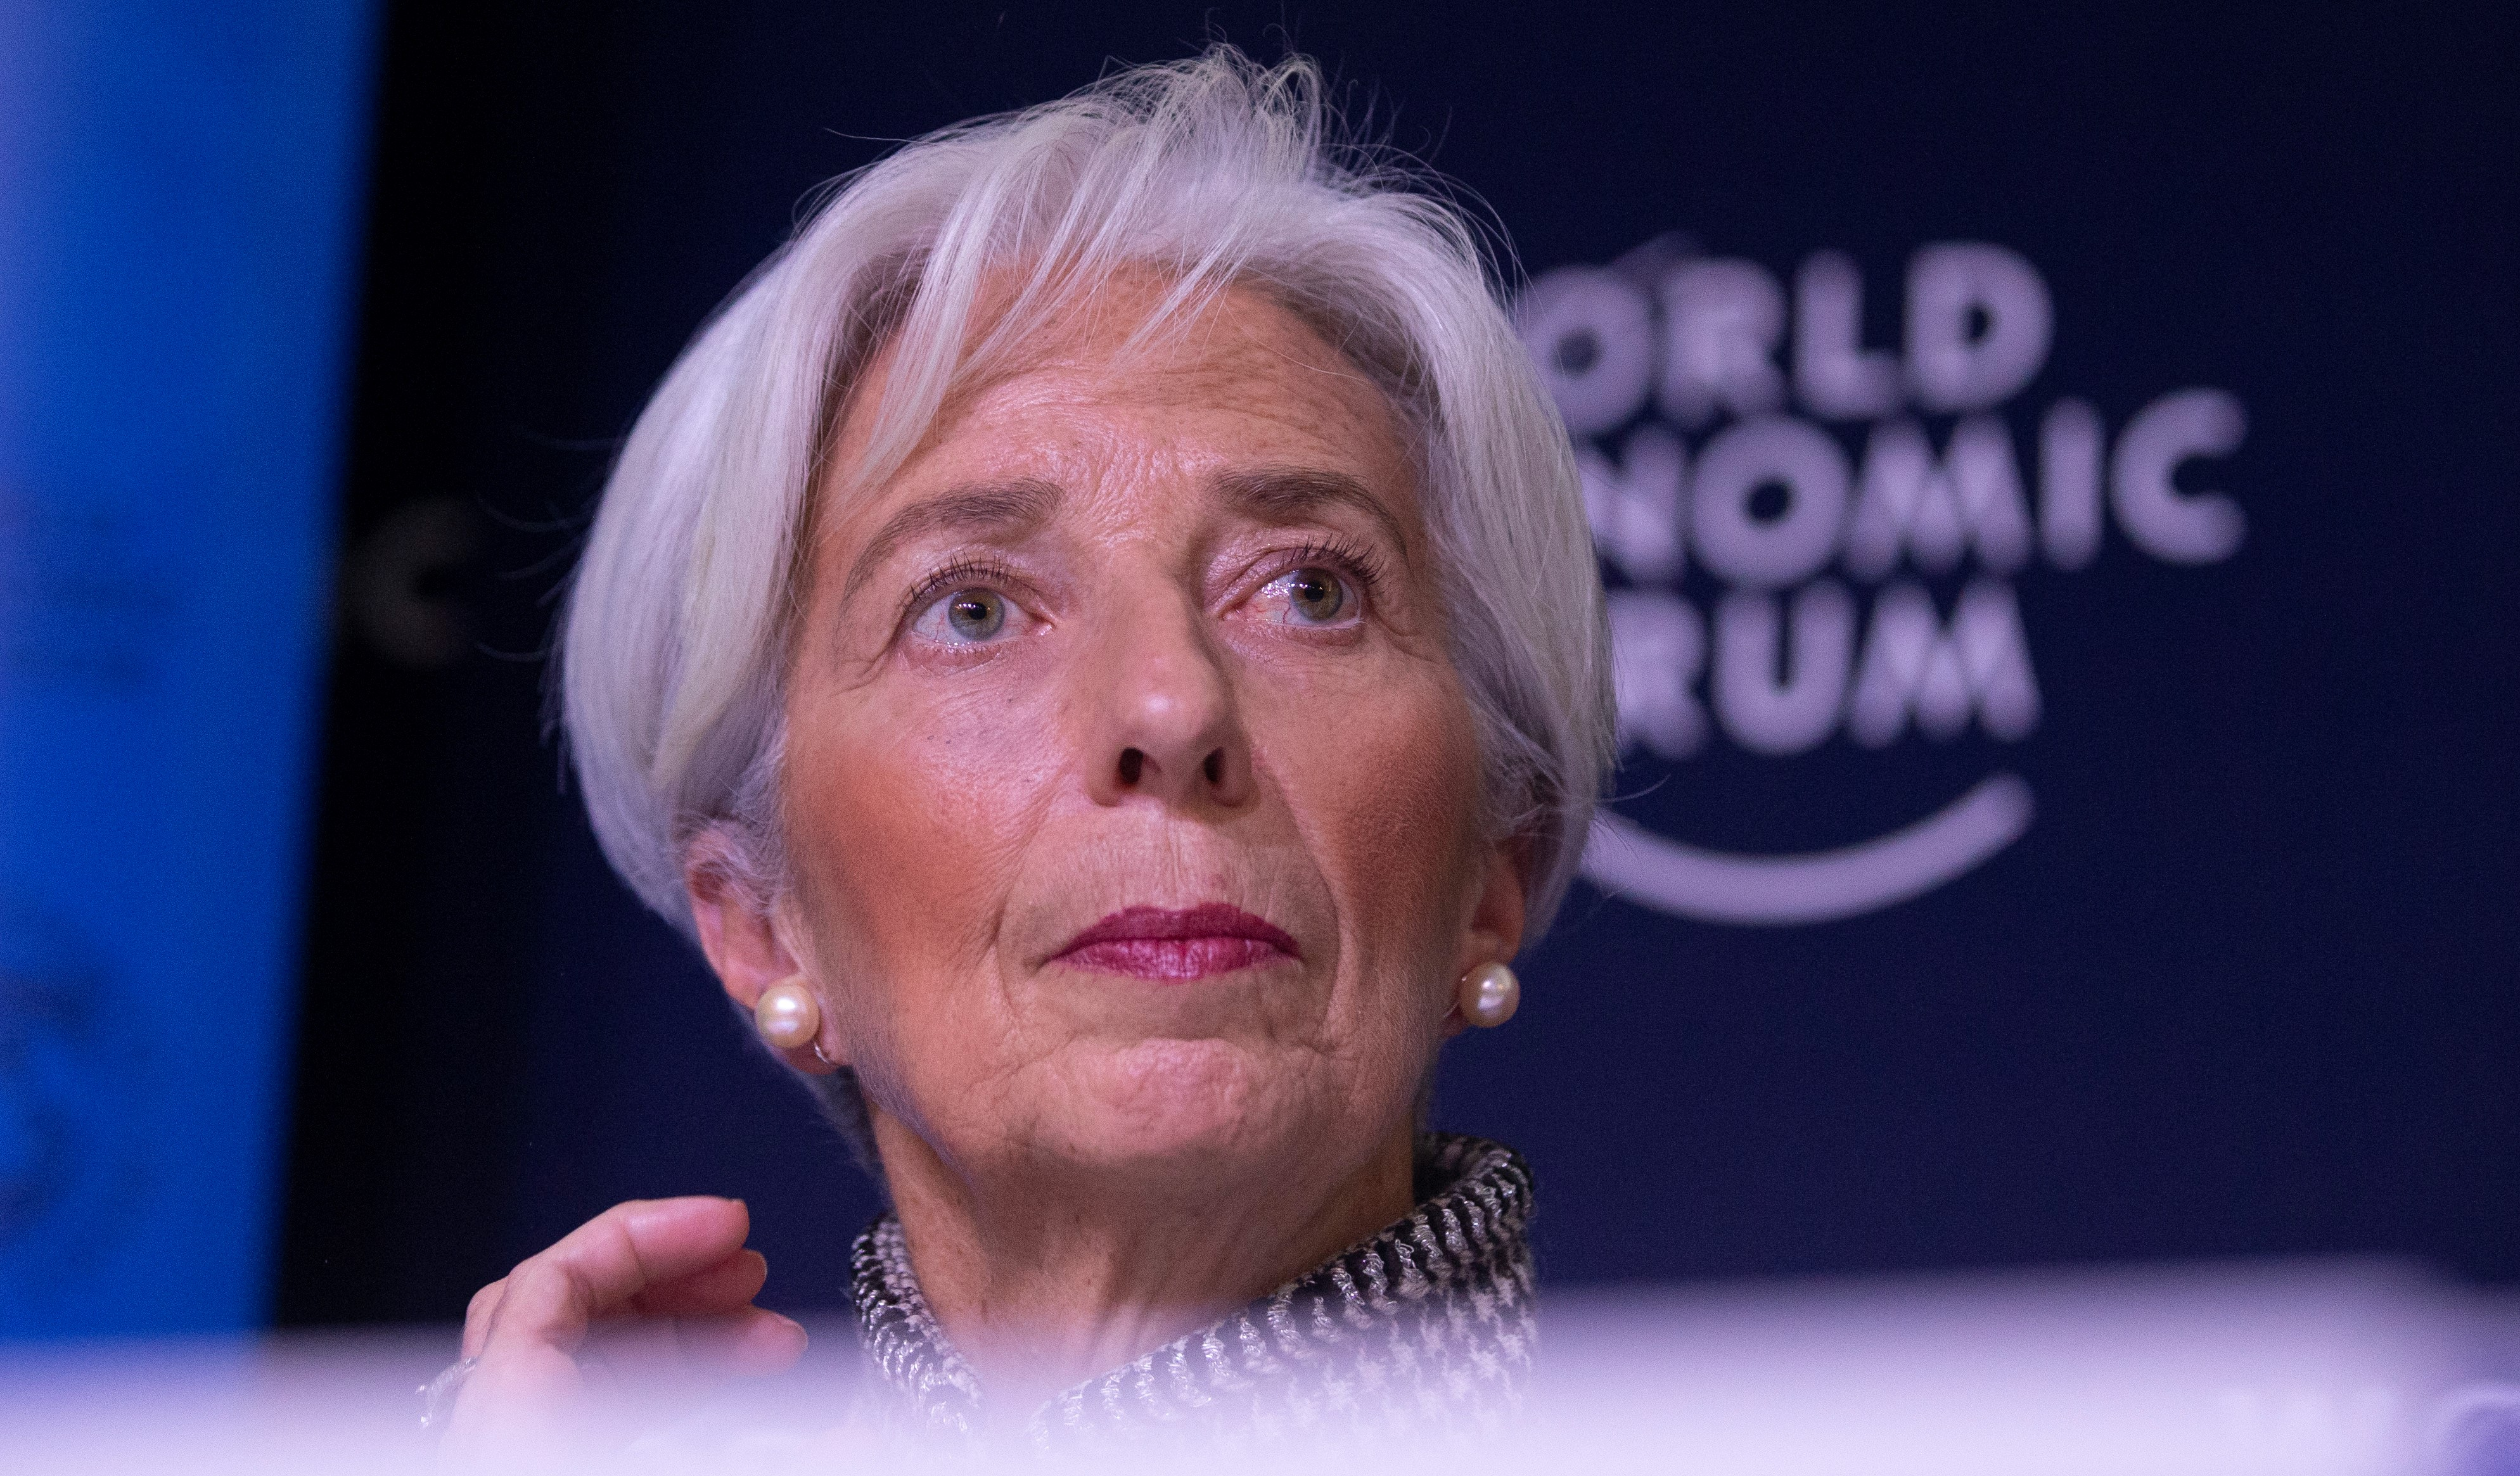 IMF's Lagarde 'honored' to be tapped to head European Central Bank